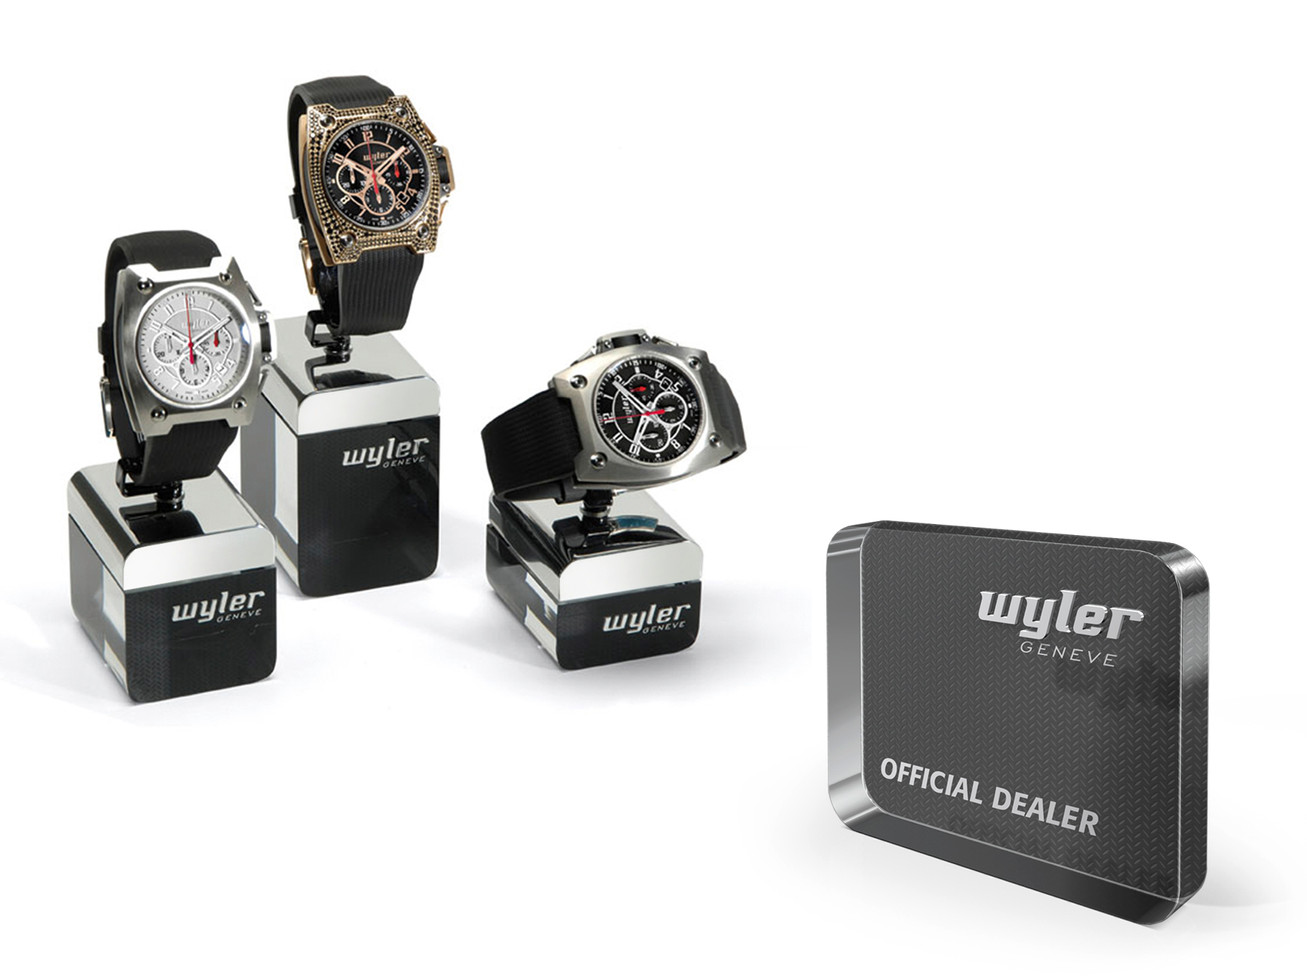 Watch holders - Official Dealer plate